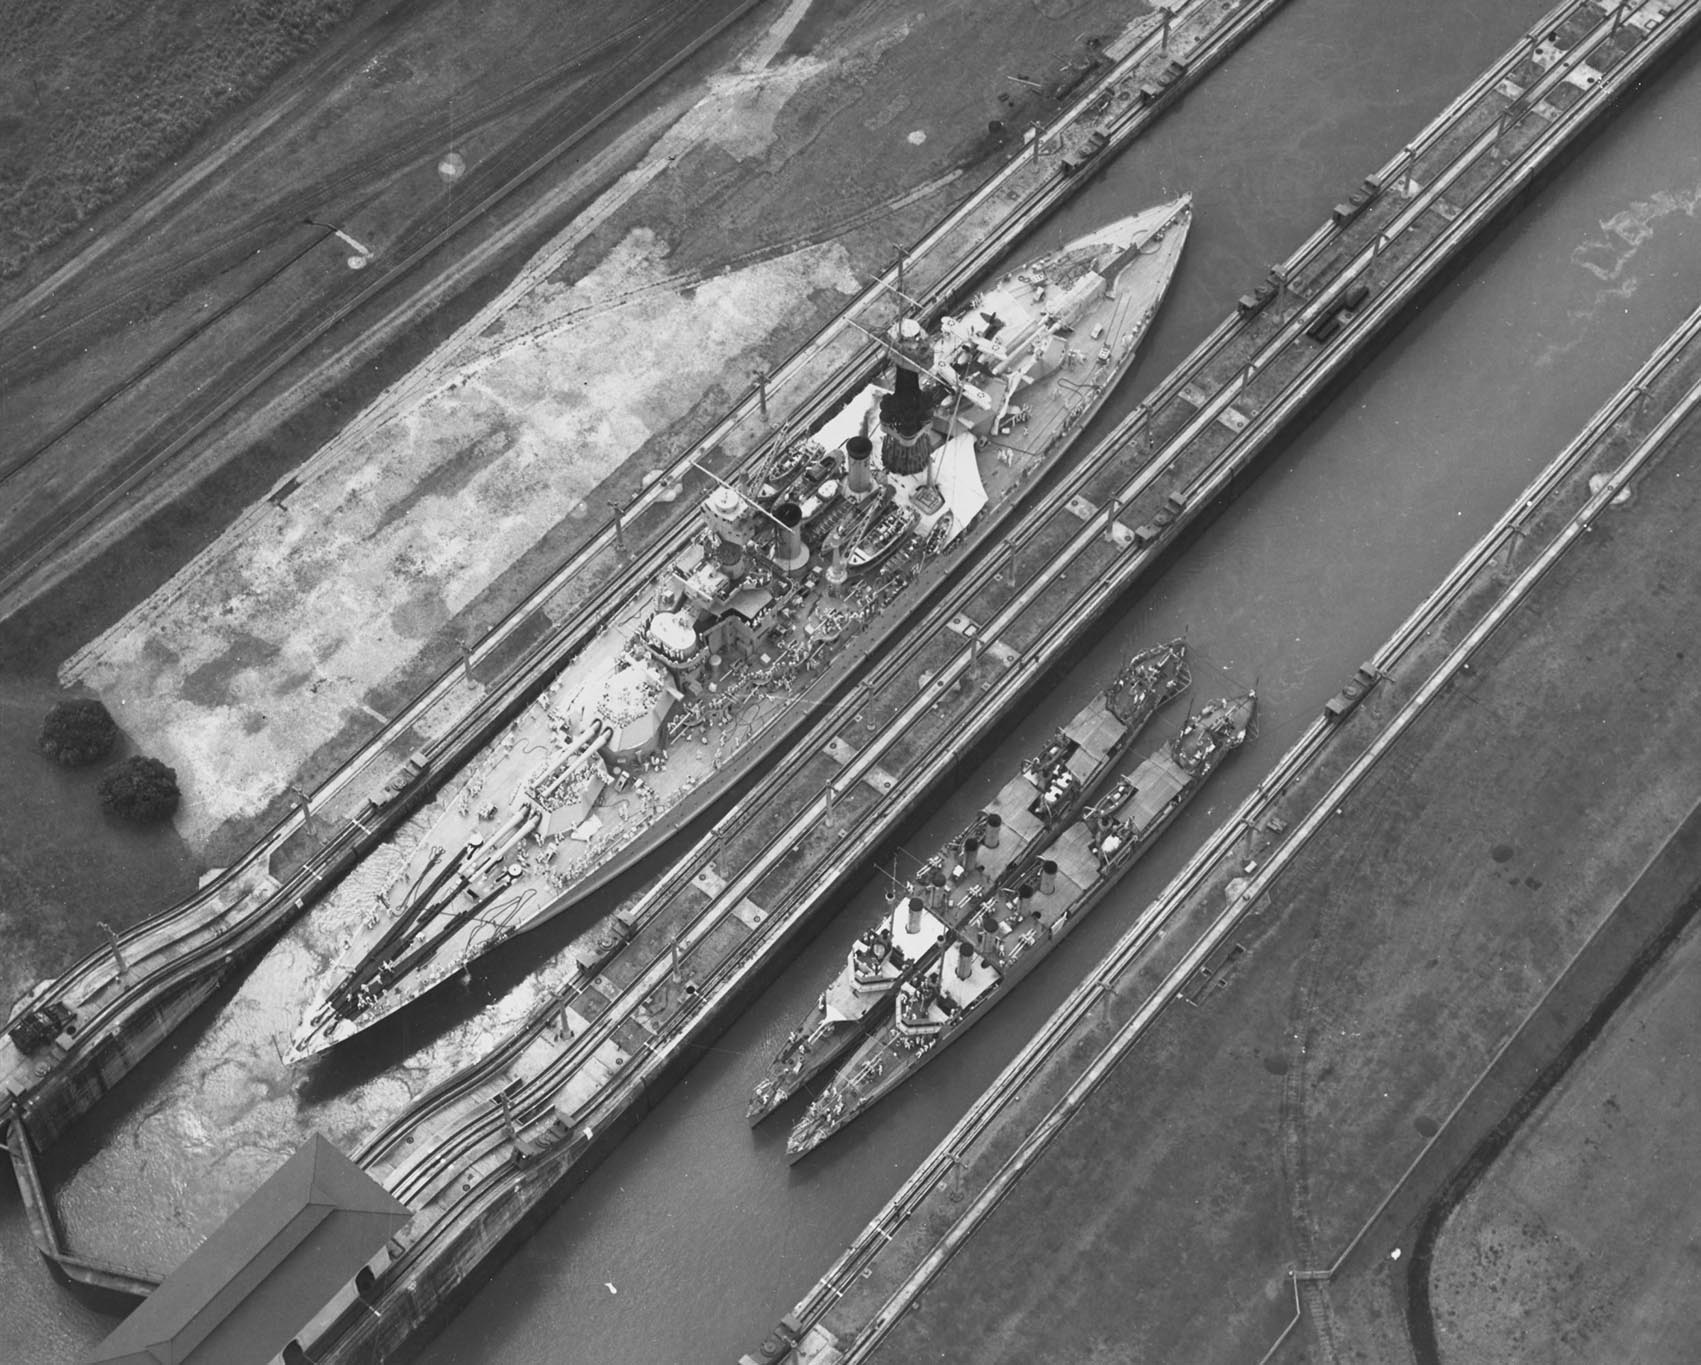 Click image for larger version.  Name:1.1. 2 8 10 USS Maryland (BB-46), USS Hovey (DD-208) and USS Long (DD-209), listed left to right.jpg Views:3 Size:331.1 KB ID:3682407